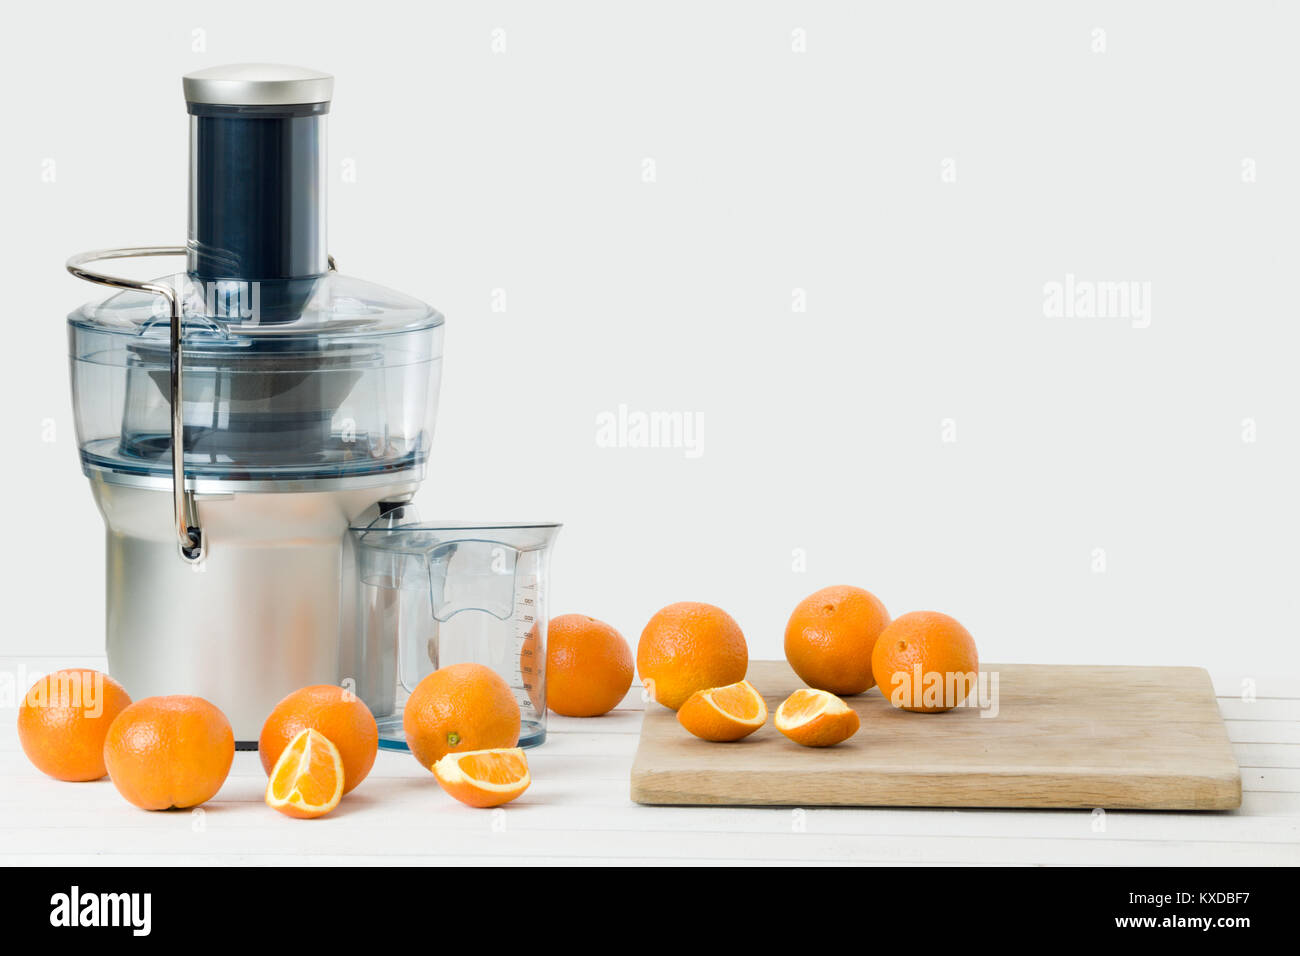 Modern electric juicer and fresh oranges, white background with copy space. - Stock Image